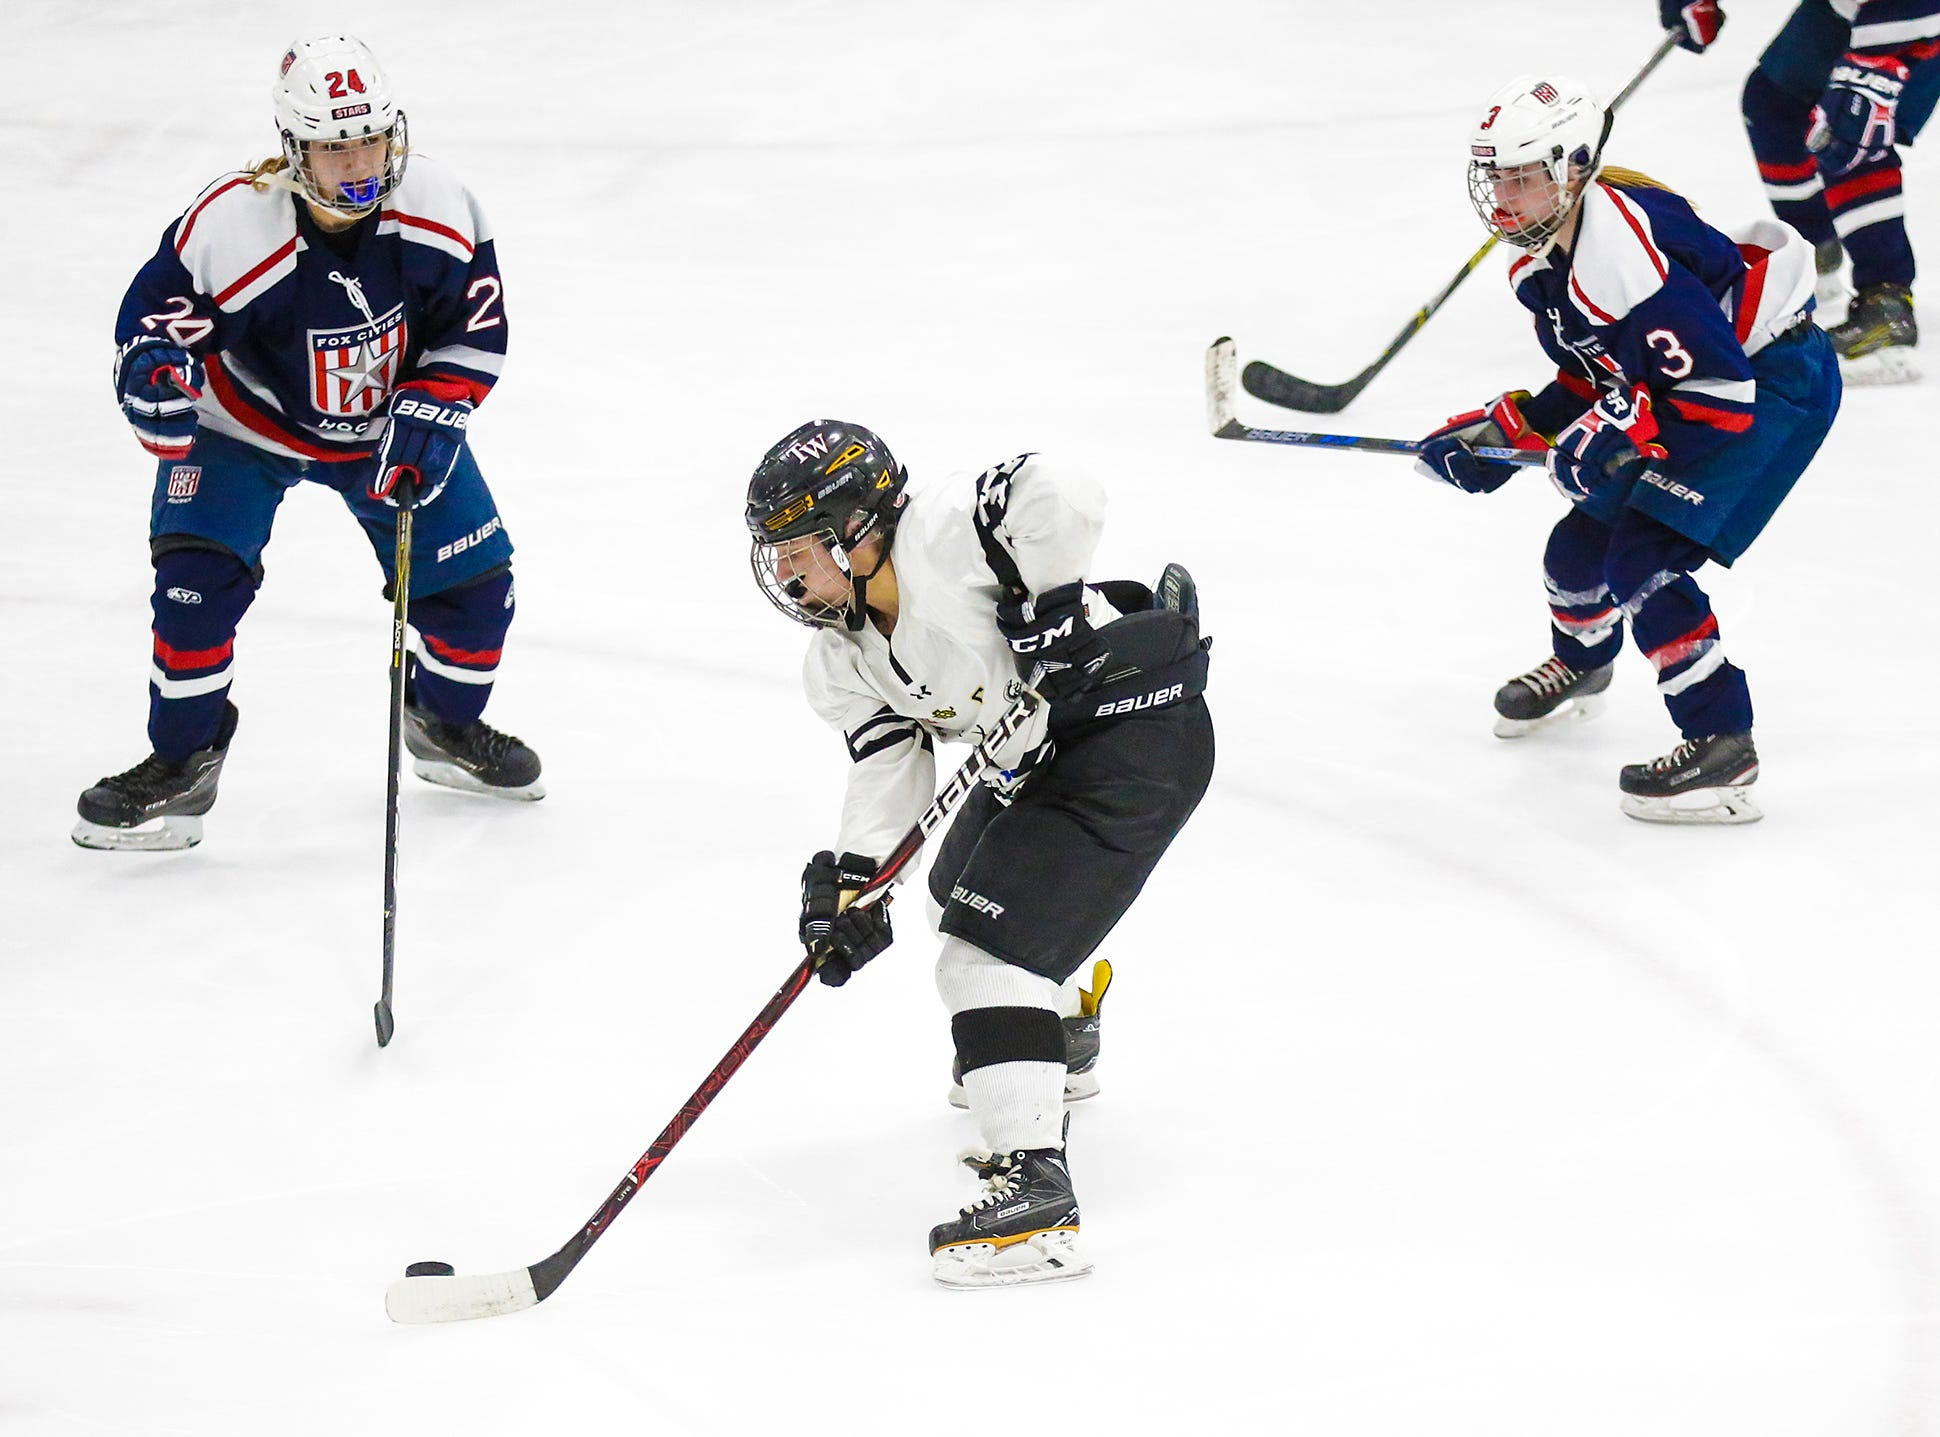 Beaver Dam Alliance girls hockey's Alyssa Heim (37) works the puck against the Fox Cities Stars' Hanna Hiltunen (24) and Shelby Hewitt (3) Friday, February 22, 2019 during their WIAA sectional final game in Fond du Lac. Fox Cities Stars won the game 5-2 and will advance to state. Doug Raflik/USA TODAY NETWORK-Wisconsin